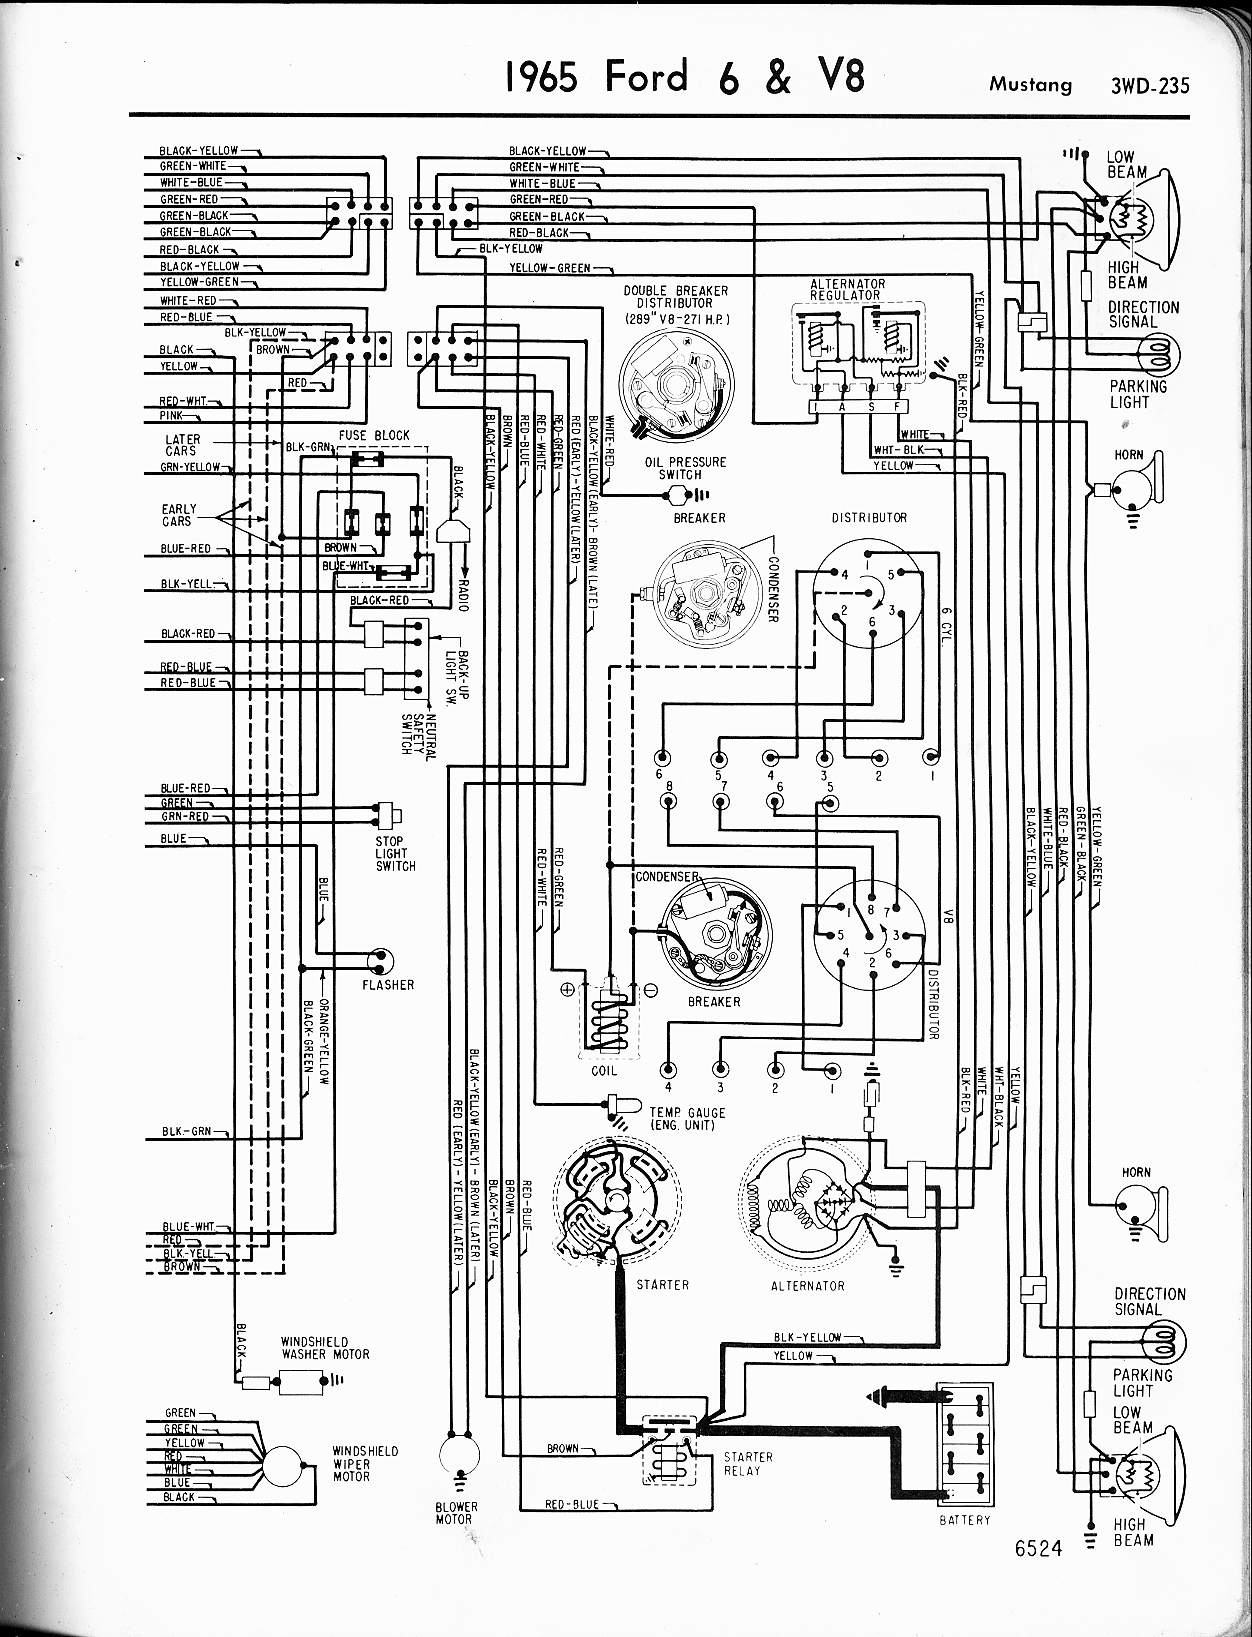 7 Wire Turn Signal Assembly Diagram Starting Know About Wiring For 1989 Mustang Detailed Schematics Rh Jvpacks Com